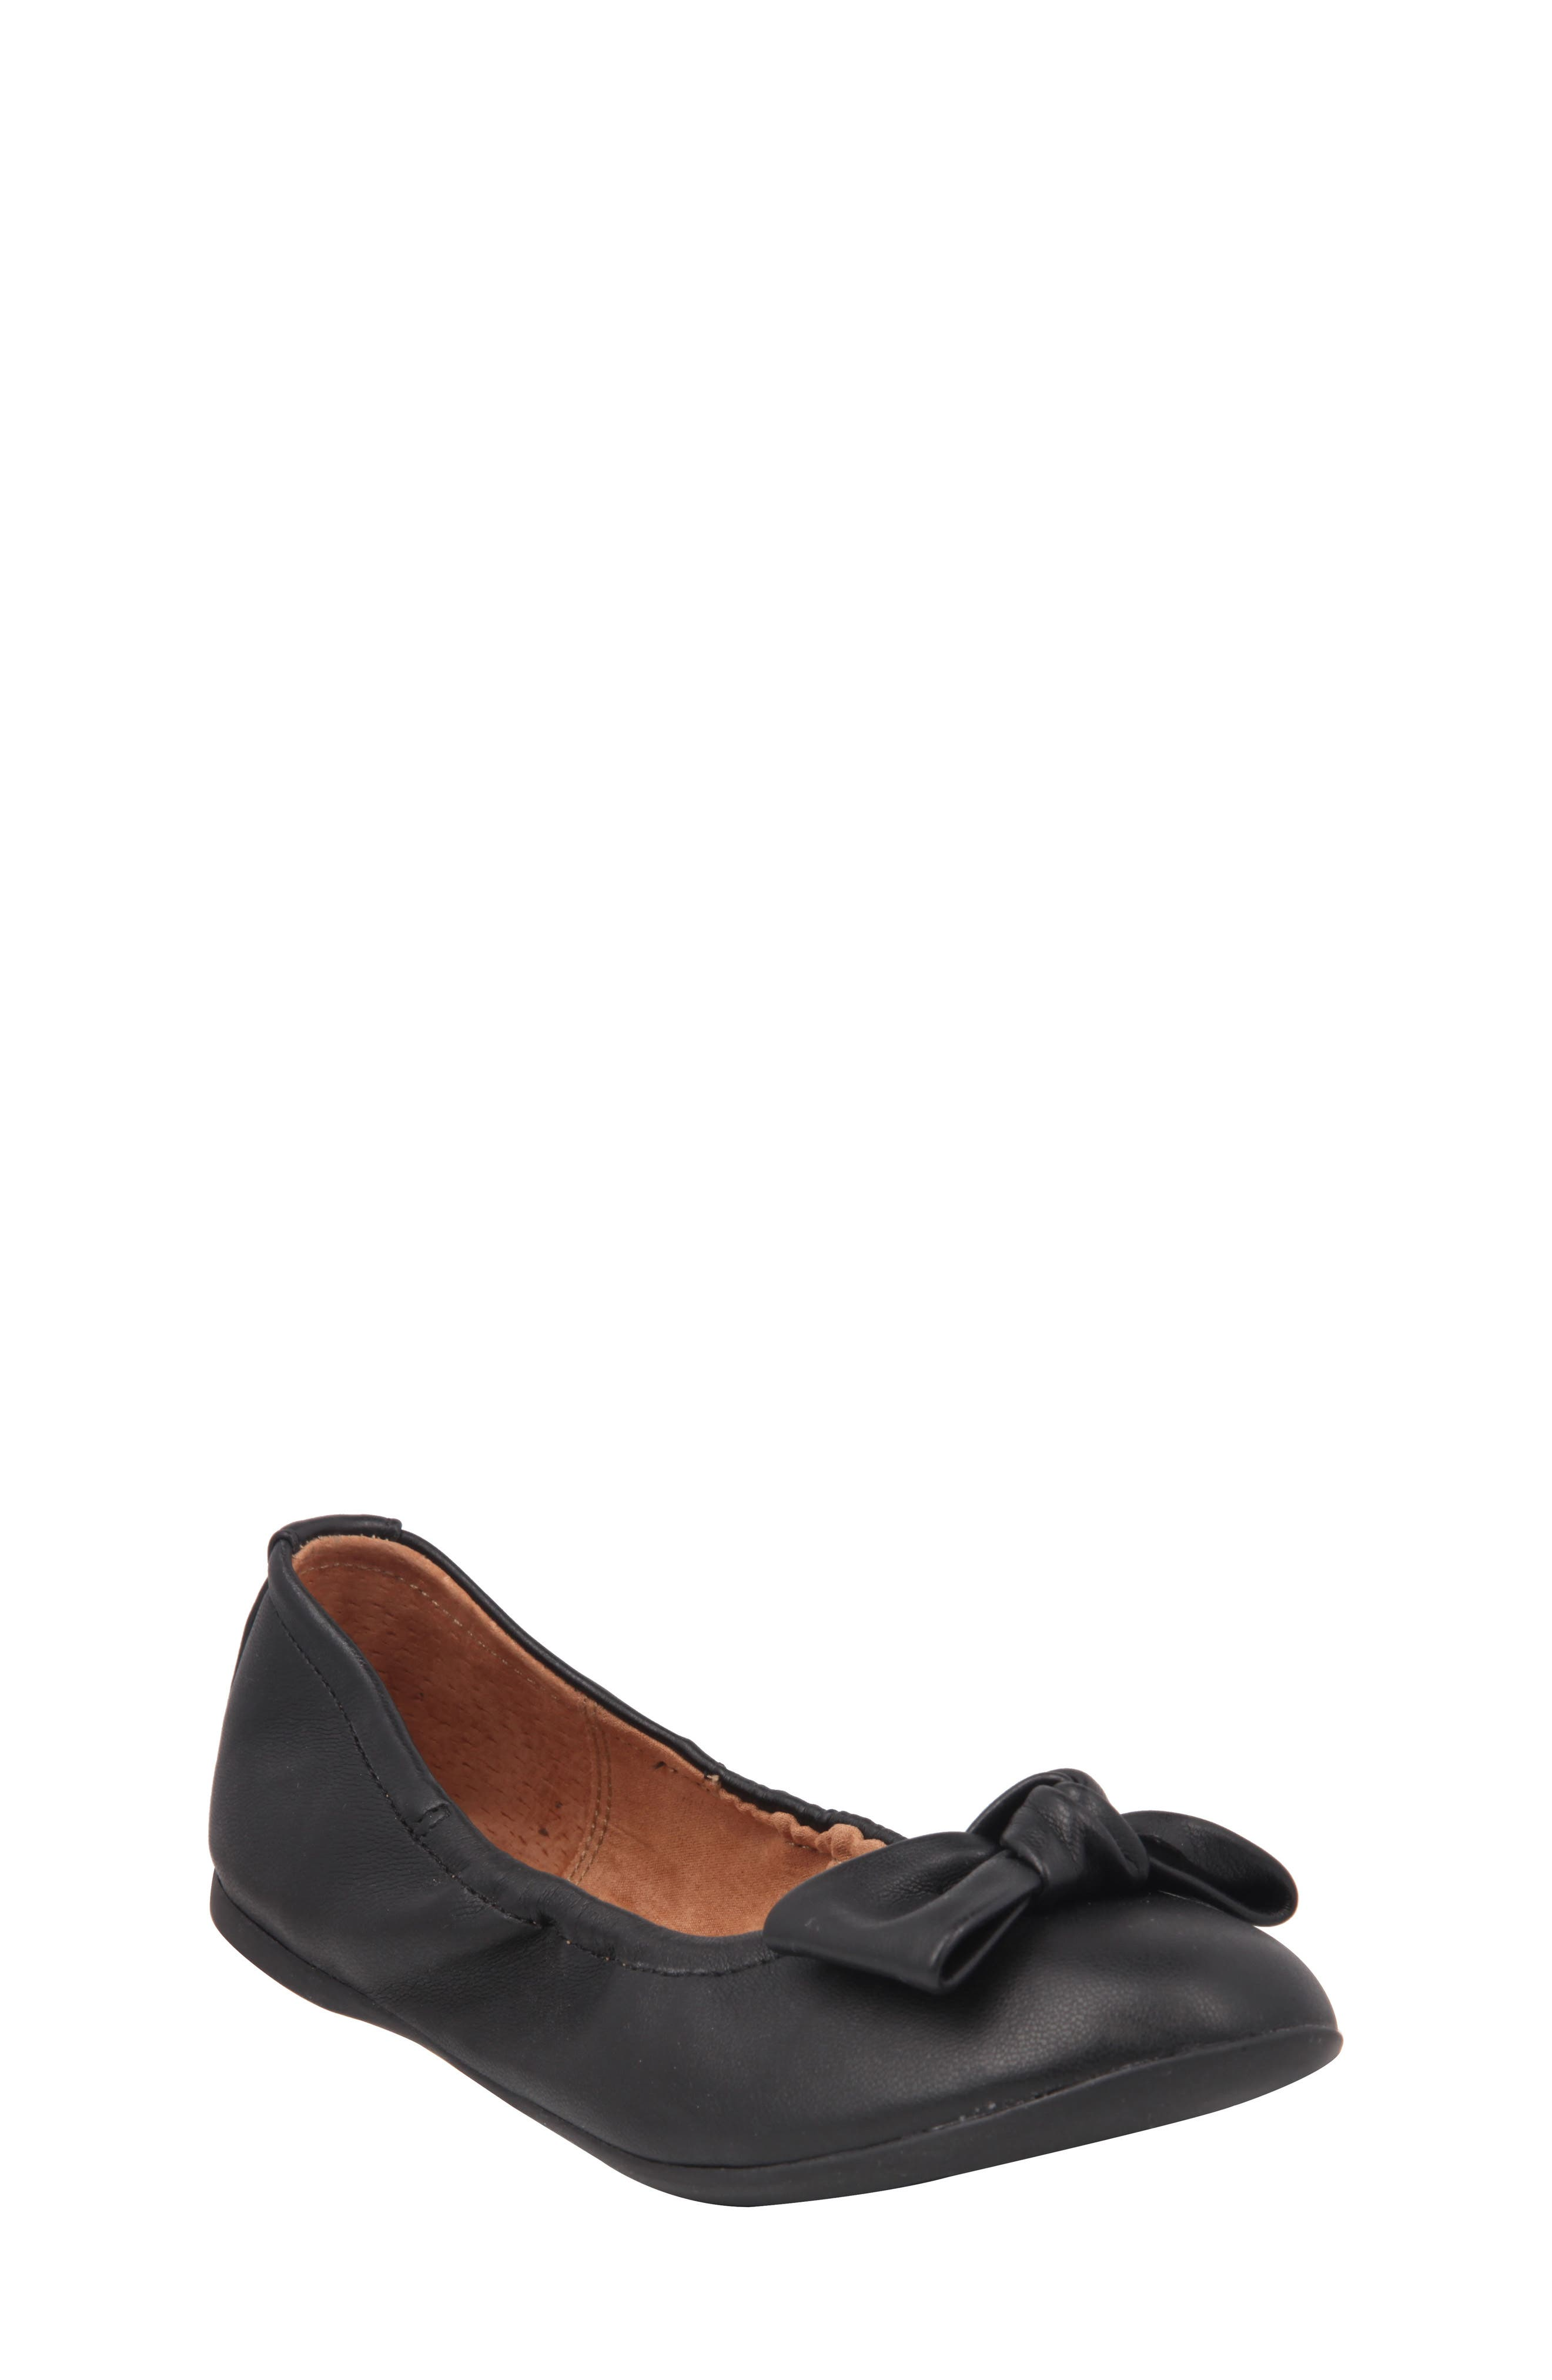 Karla Bow Ballet Flat,                             Main thumbnail 1, color,                             Black Smooth Leather